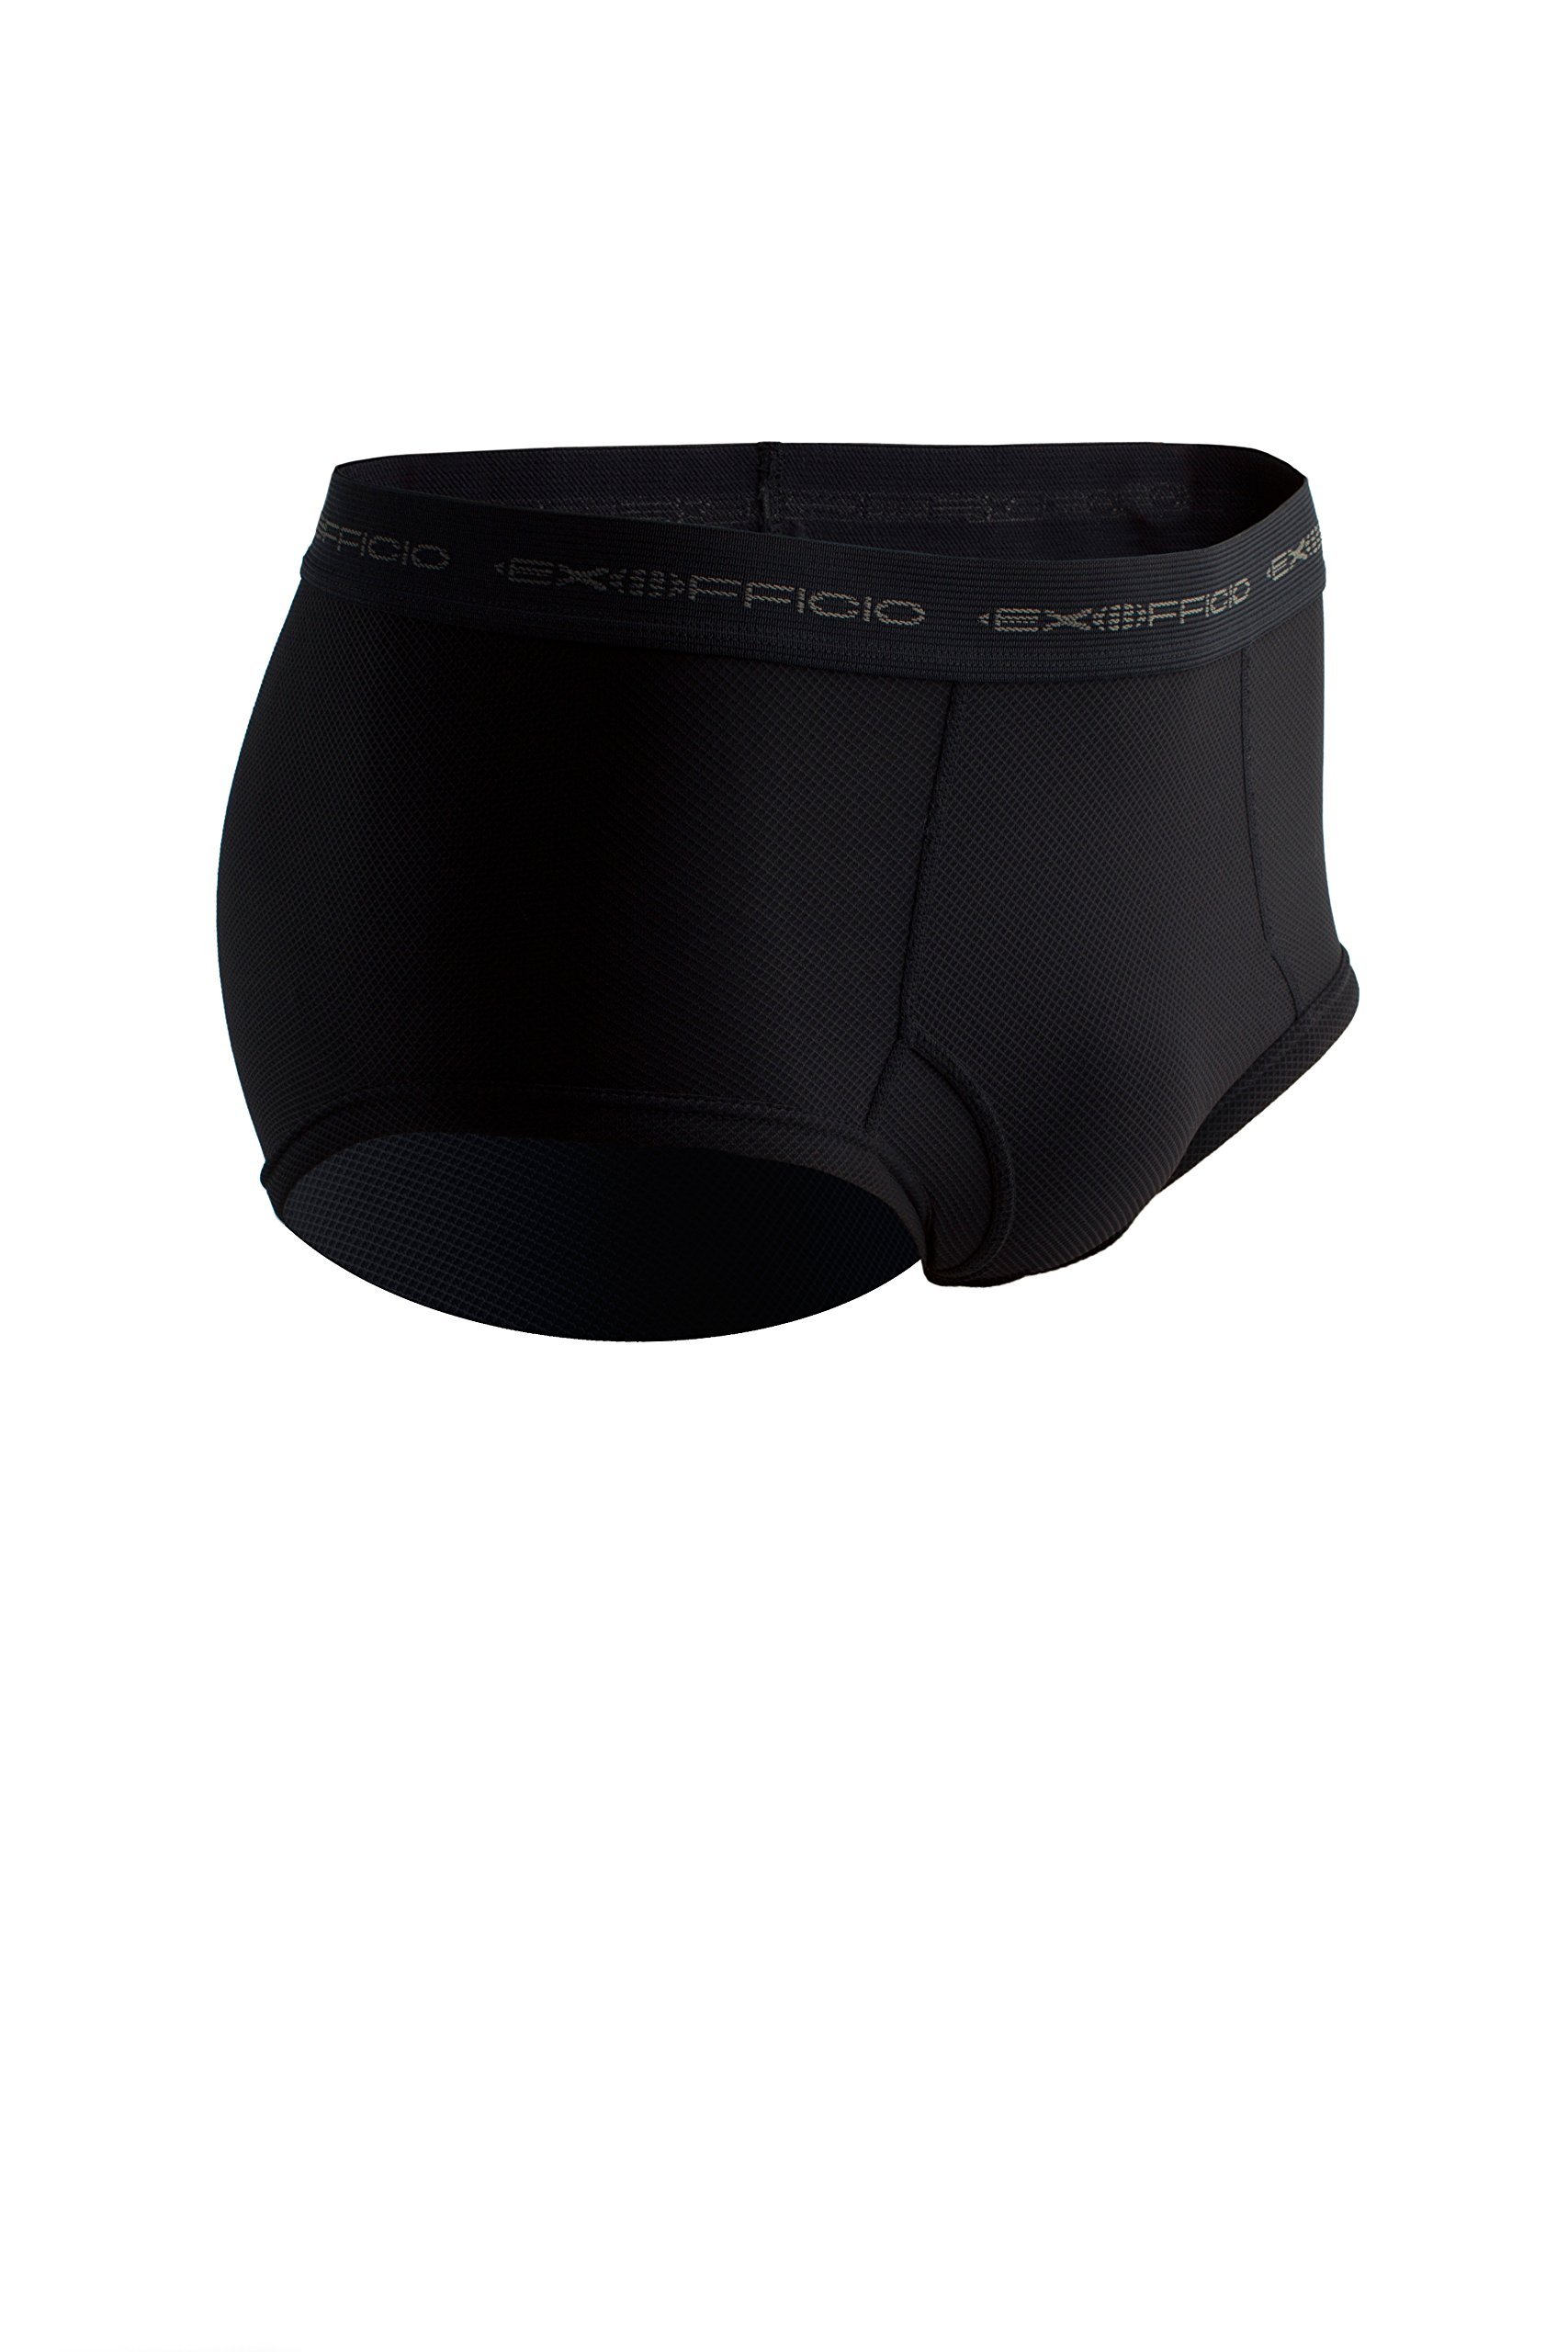 ExOfficio Men's Give N Go Brief, Black, Medium